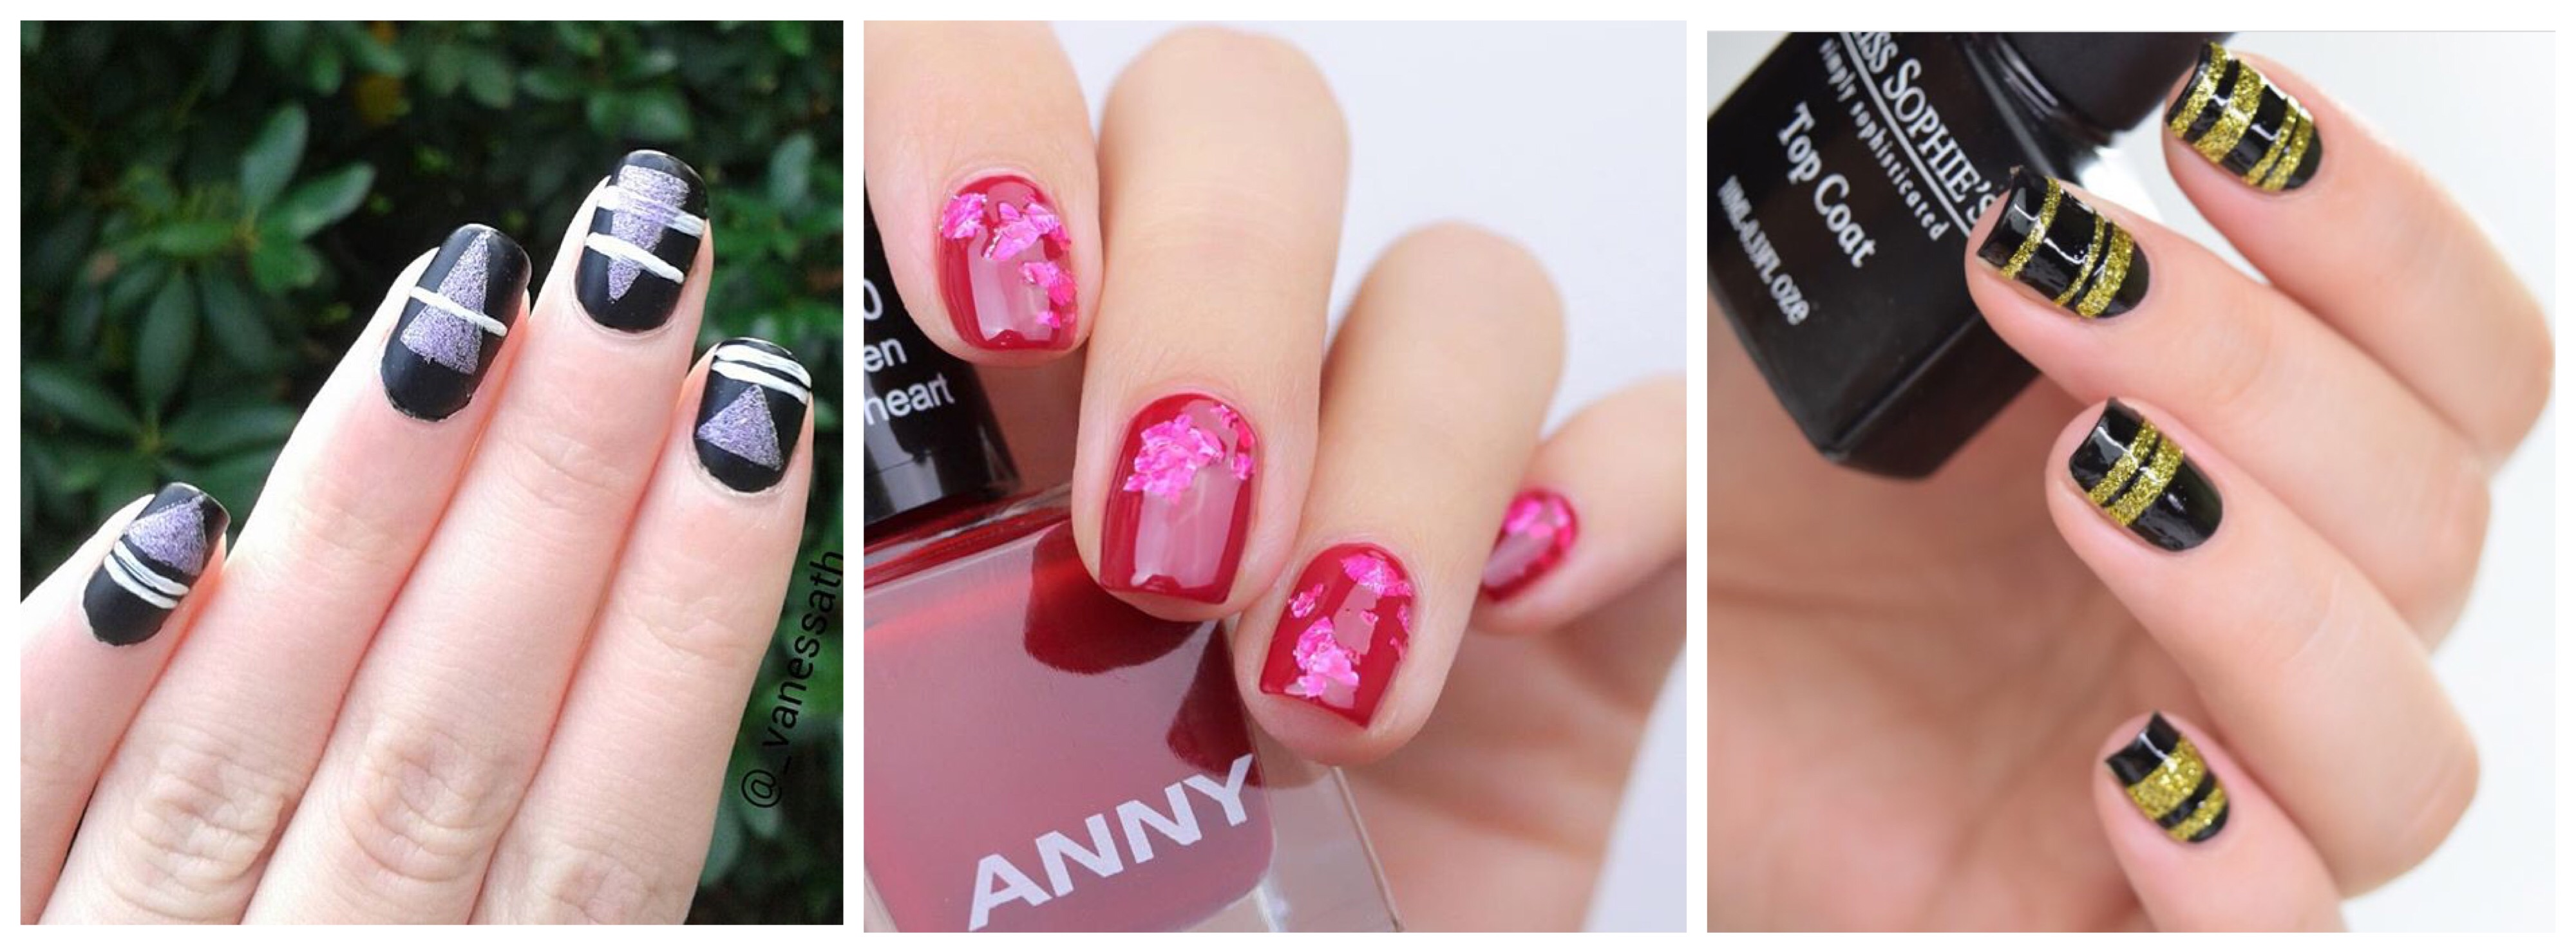 party-nails-17-09-2016